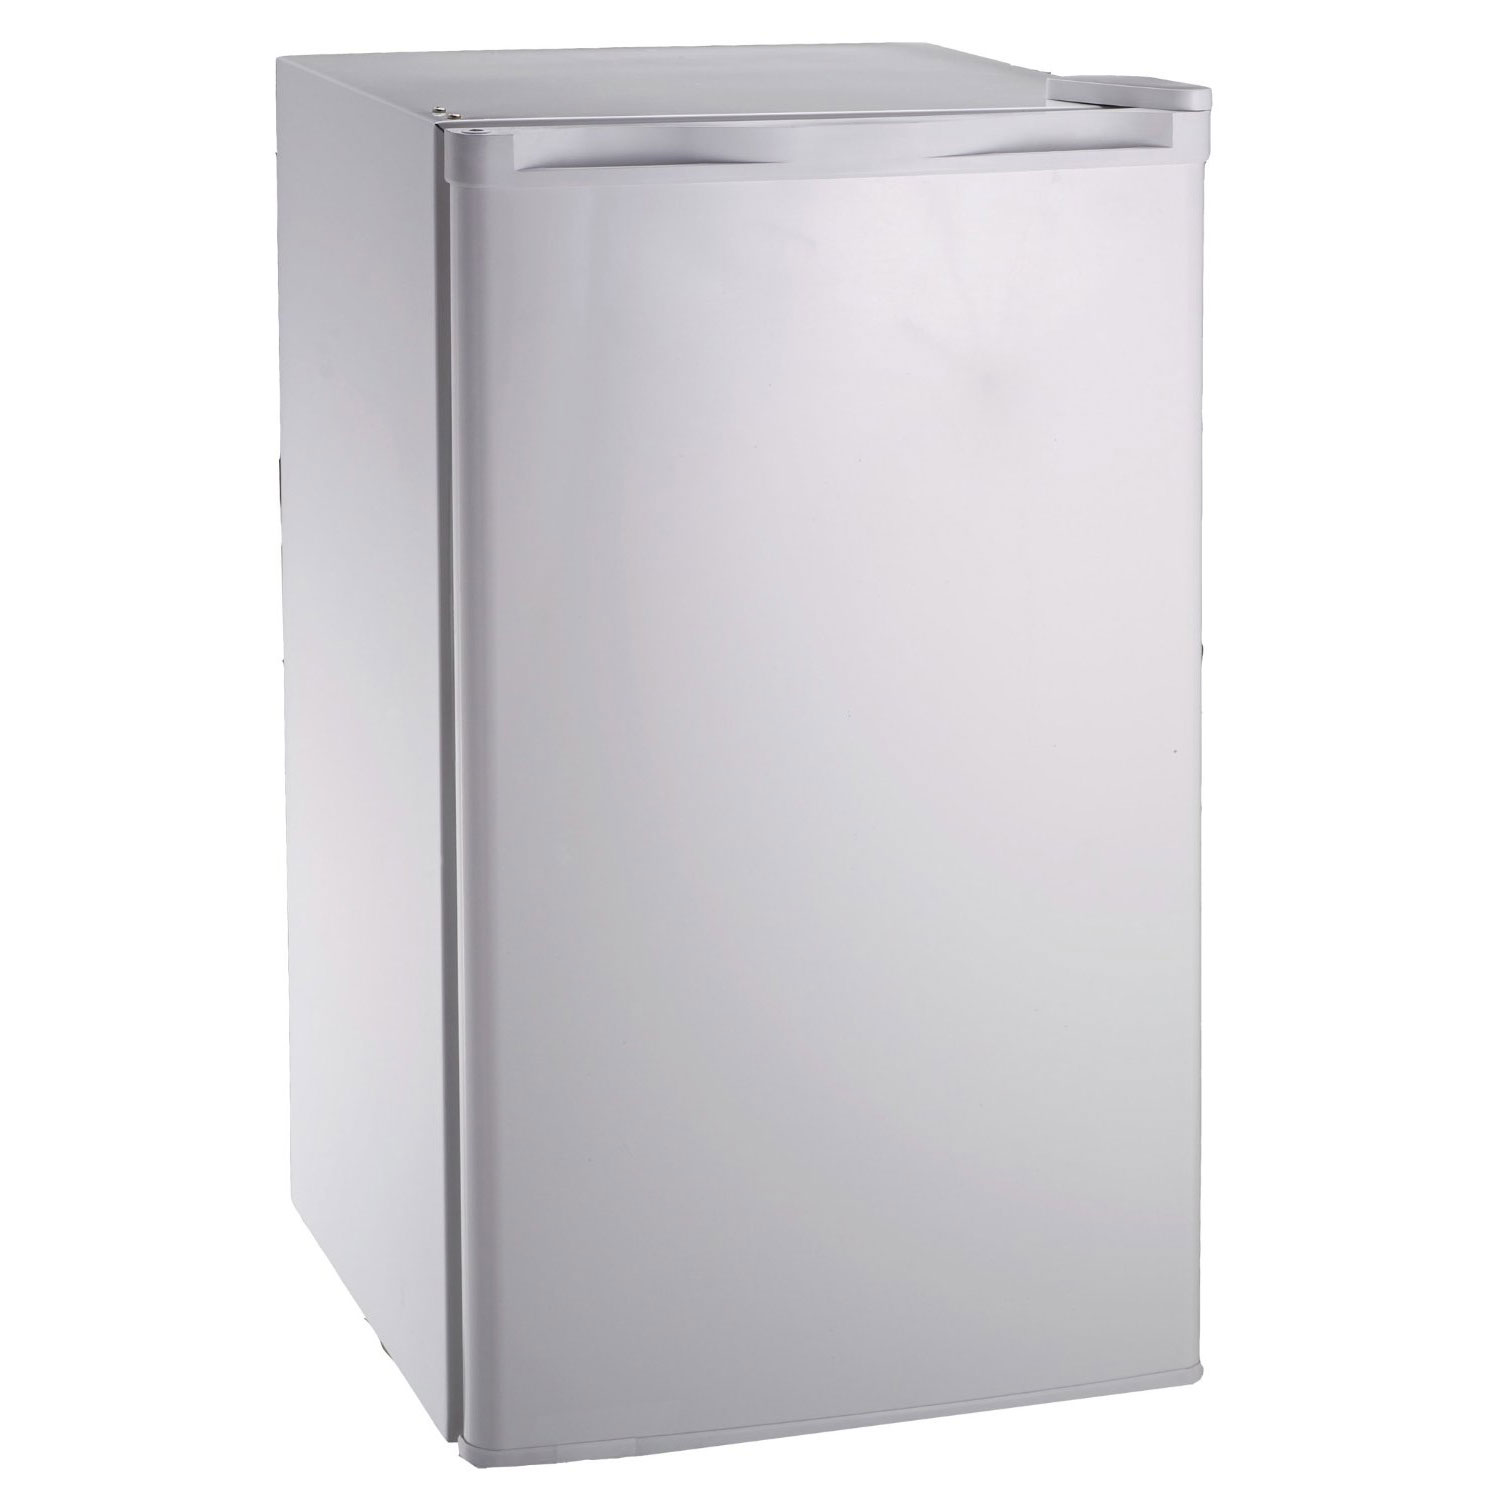 Igloo Fr320i 3 2 Cu Ft Compact Fridge White Walmart Com